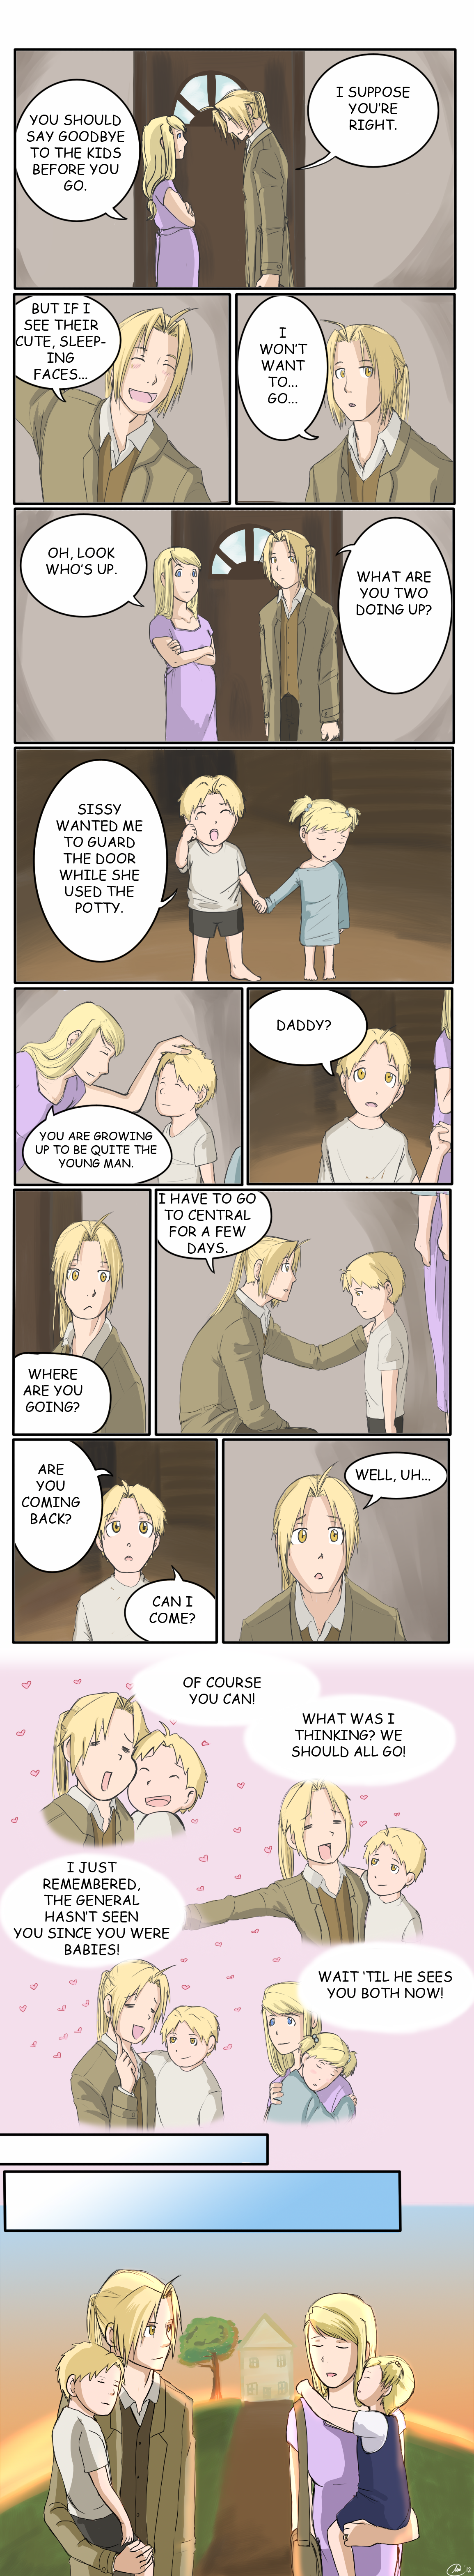 FullMetal Alchemist Omake: Family Vacation by Perfectlykawaii93.deviantart.com    Ah, almost a parallel of Hoho and Trisha, but Ed does it RIGHT!